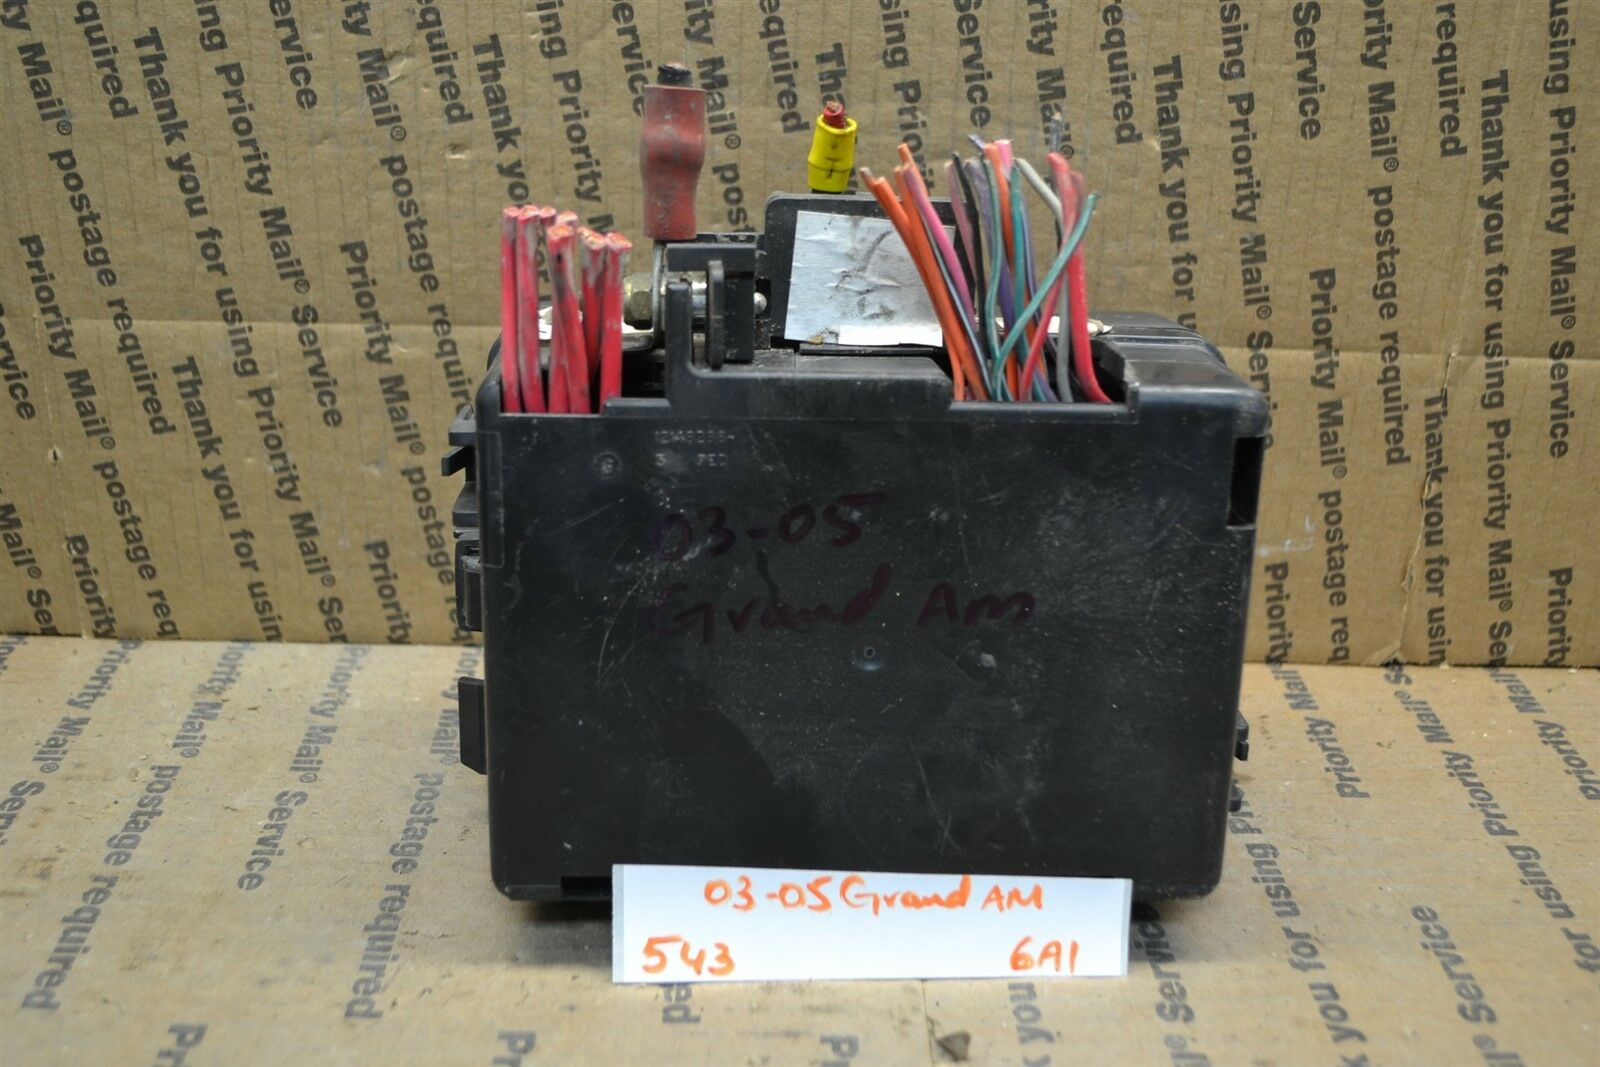 Used Pontiac Grand Am Computers Chips Cruise Control And Related 1998 Prix Gt Fuse Box 2003 2005 Junction Oem 12146286 Module 543 6a1